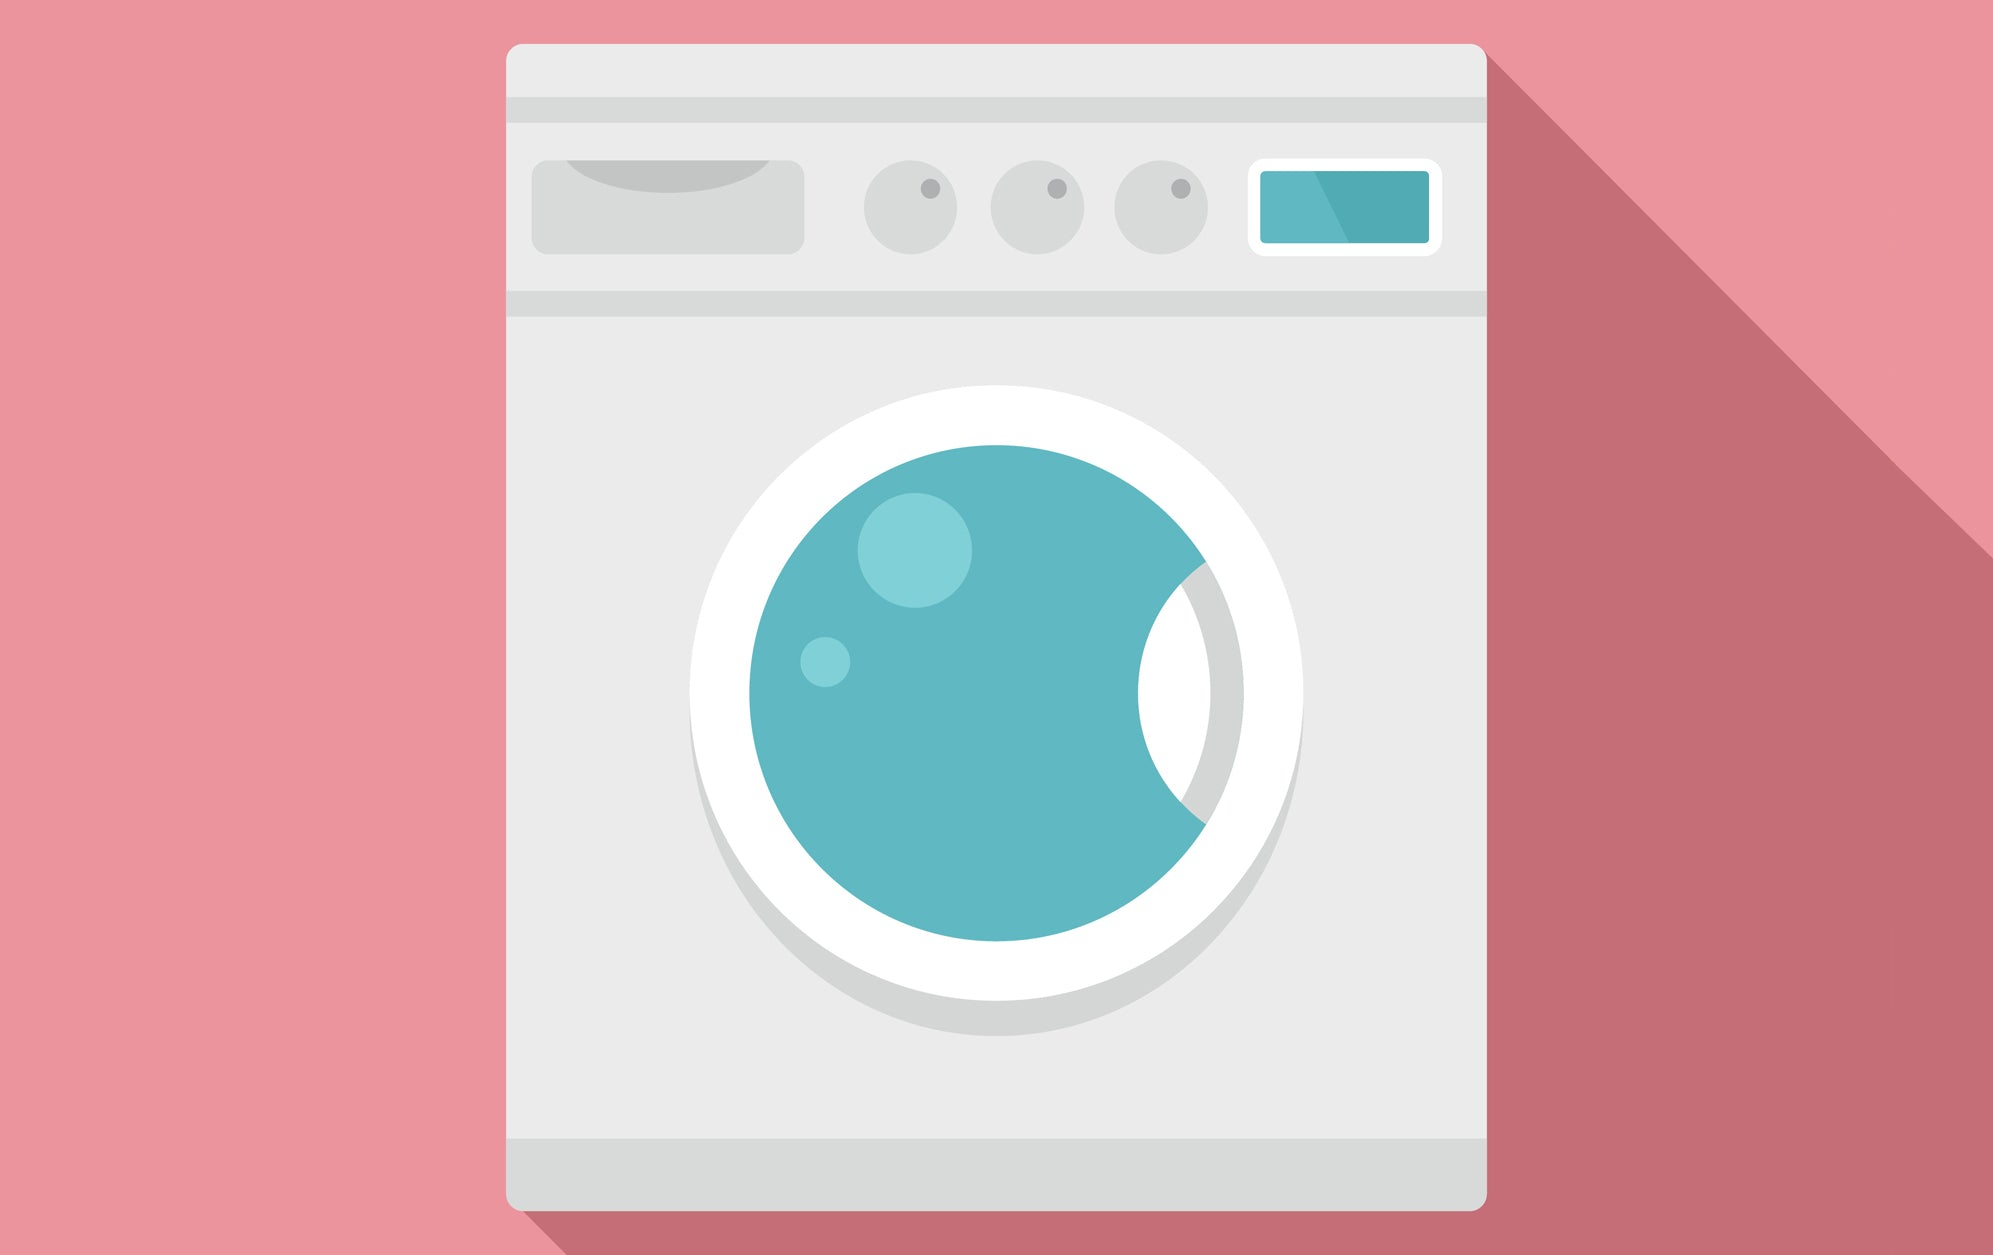 washing machine washing